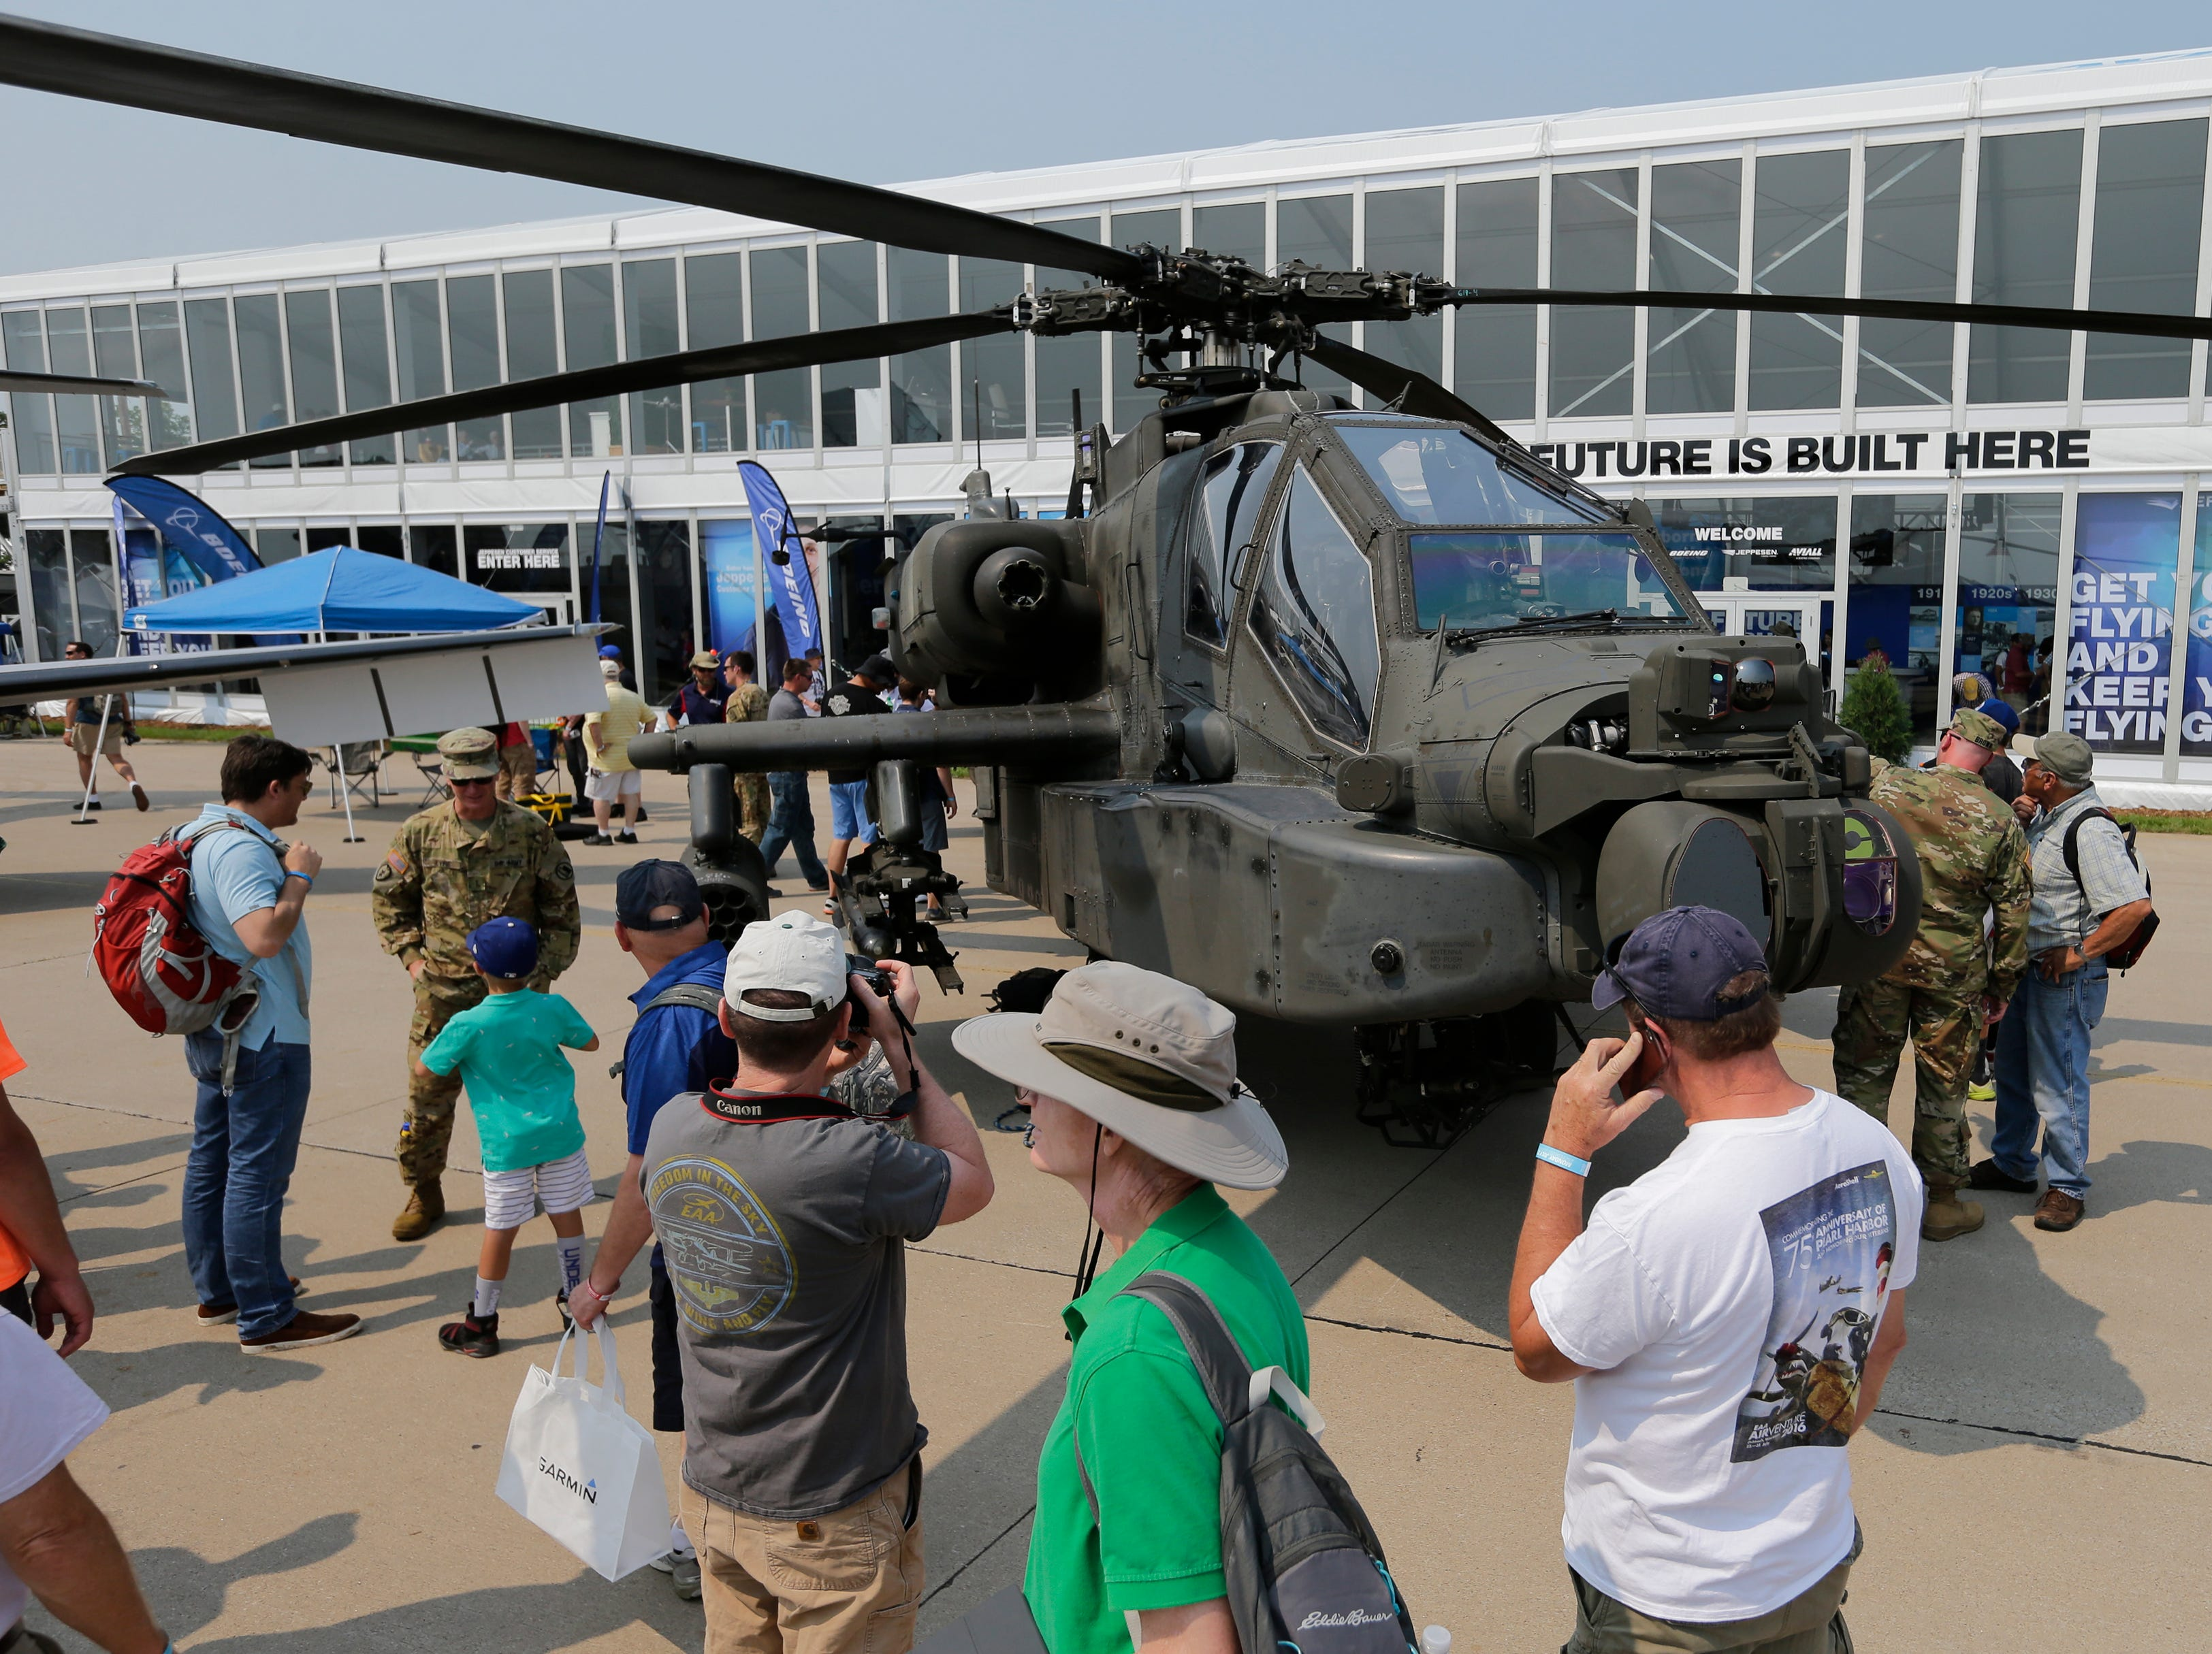 The Apache helicopter drew a crowd during the first day.  The first day of AirVenture 2018 opened on July 23, 2018.  Thousands of people will pass through the gates of AirVenture. Joe Sienkiewicz/USA Today NETWORK-Wisconsin